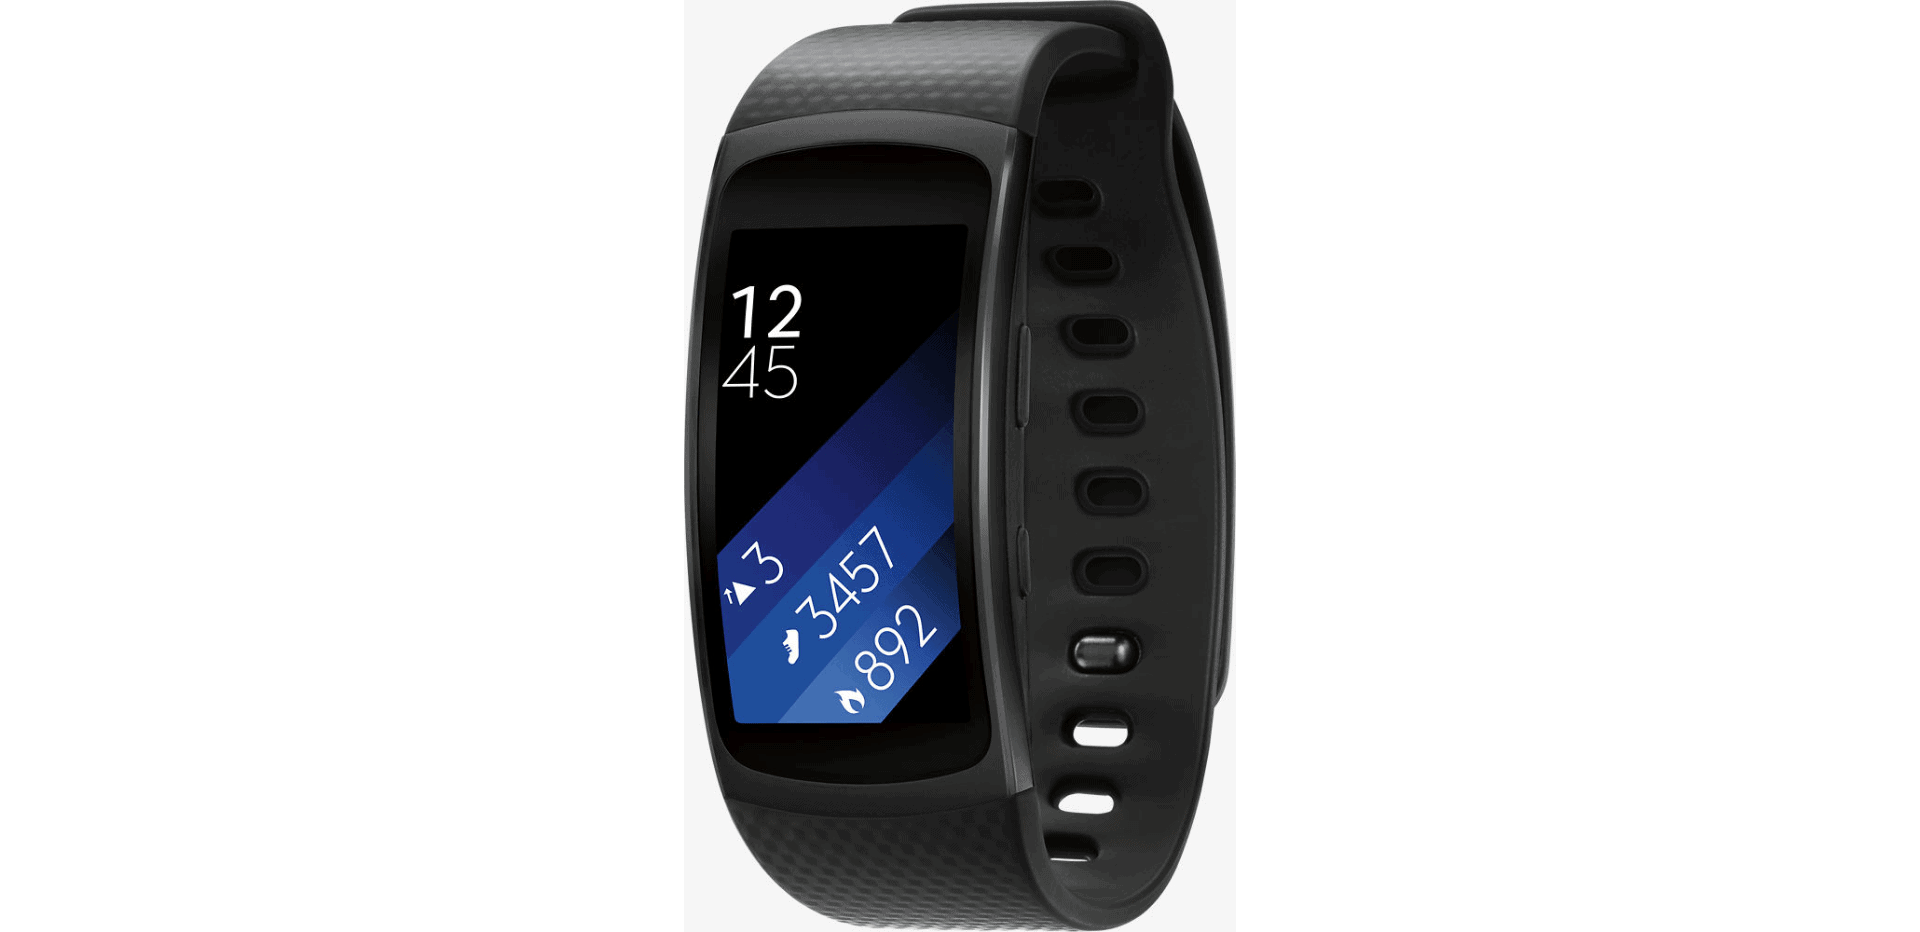 deal samsung gear fit2 fitness tracker for 79 5 5 17. Black Bedroom Furniture Sets. Home Design Ideas